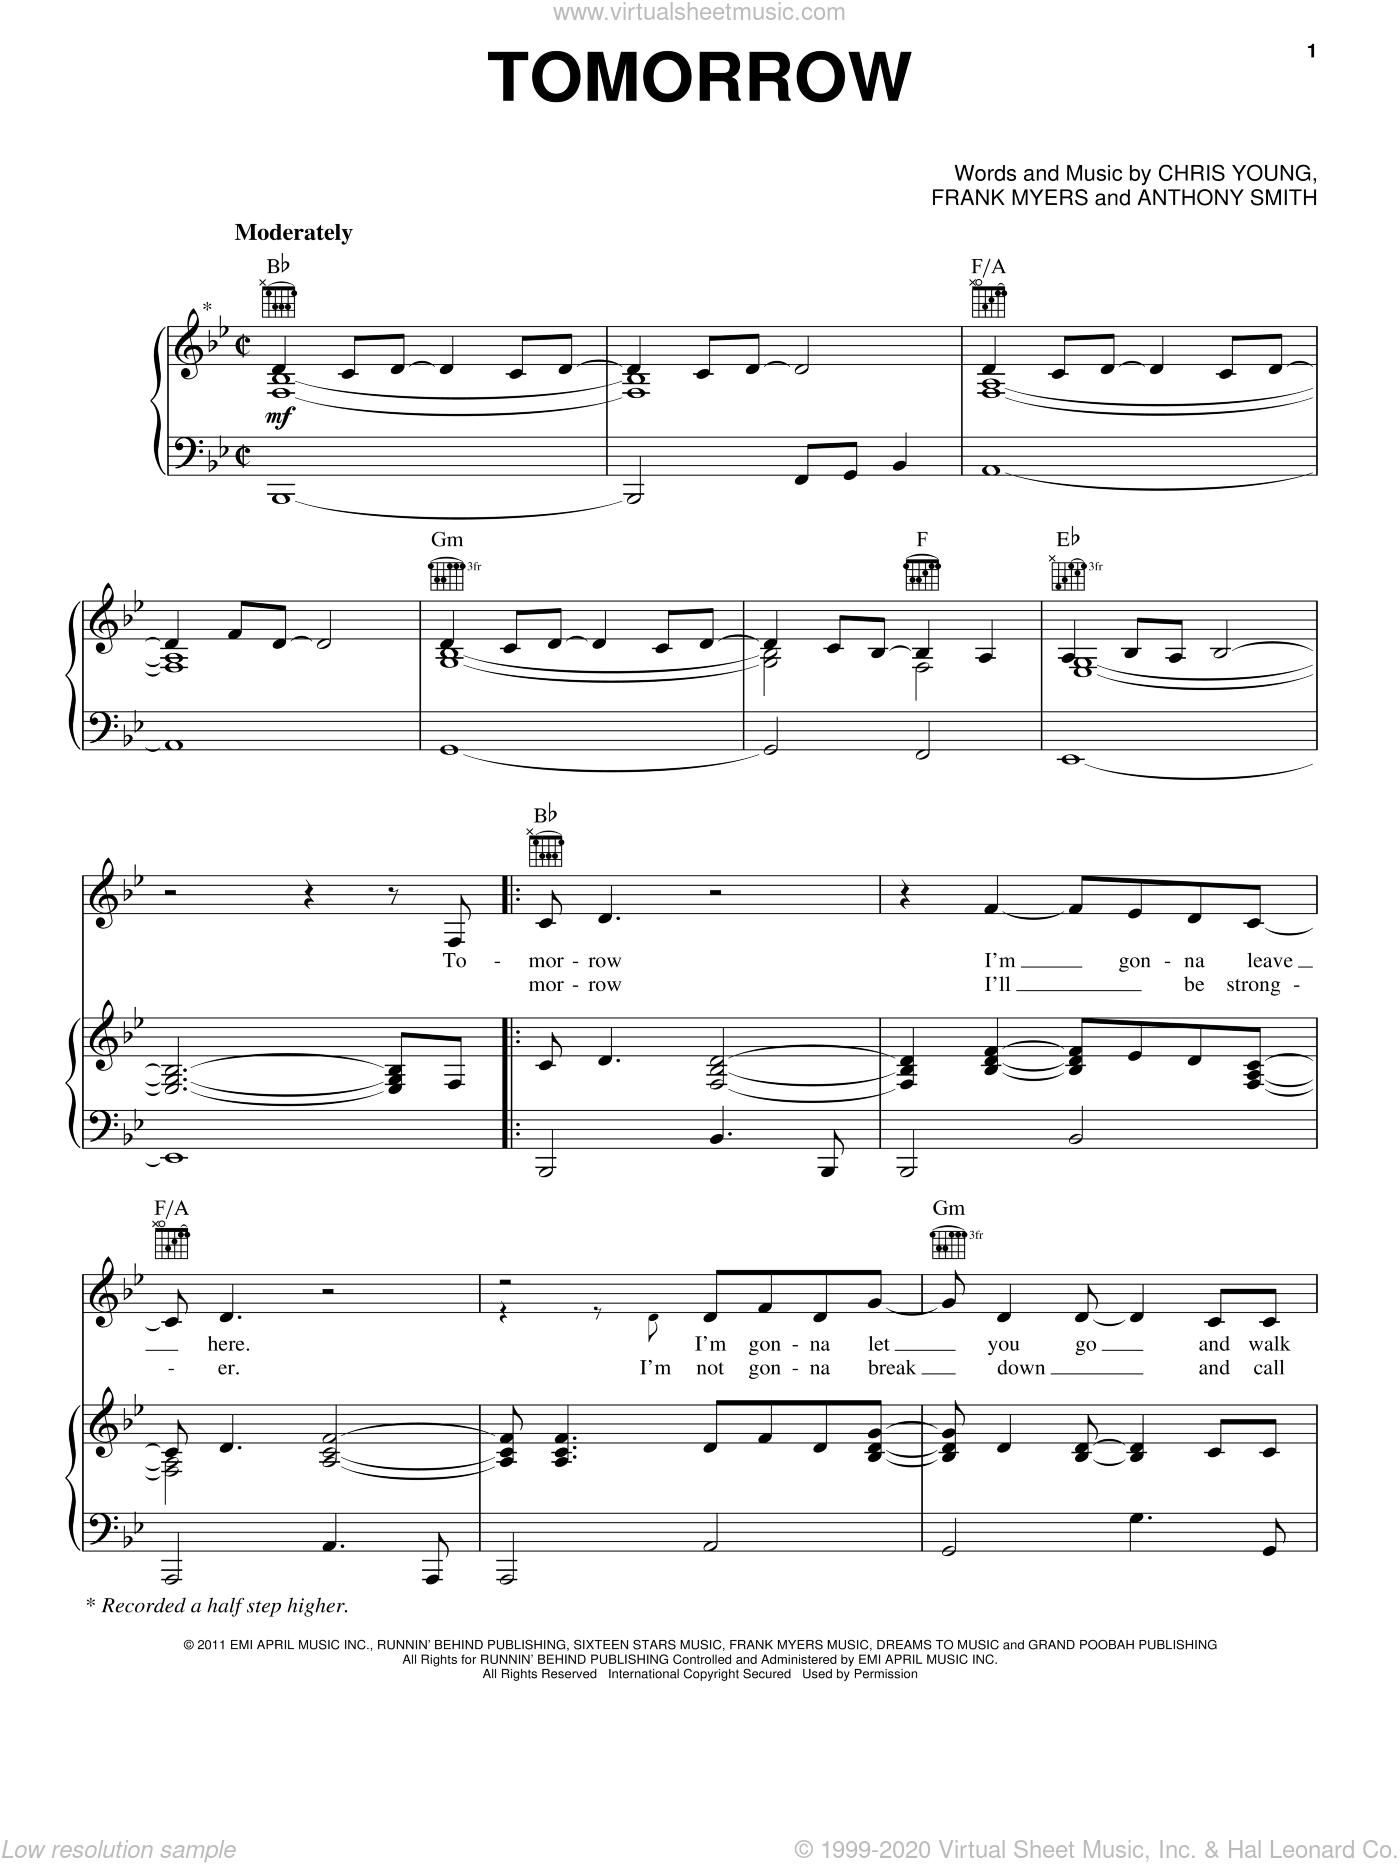 Tomorrow sheet music for voice, piano or guitar by Chris Young and Frank Myers, intermediate. Score Image Preview.